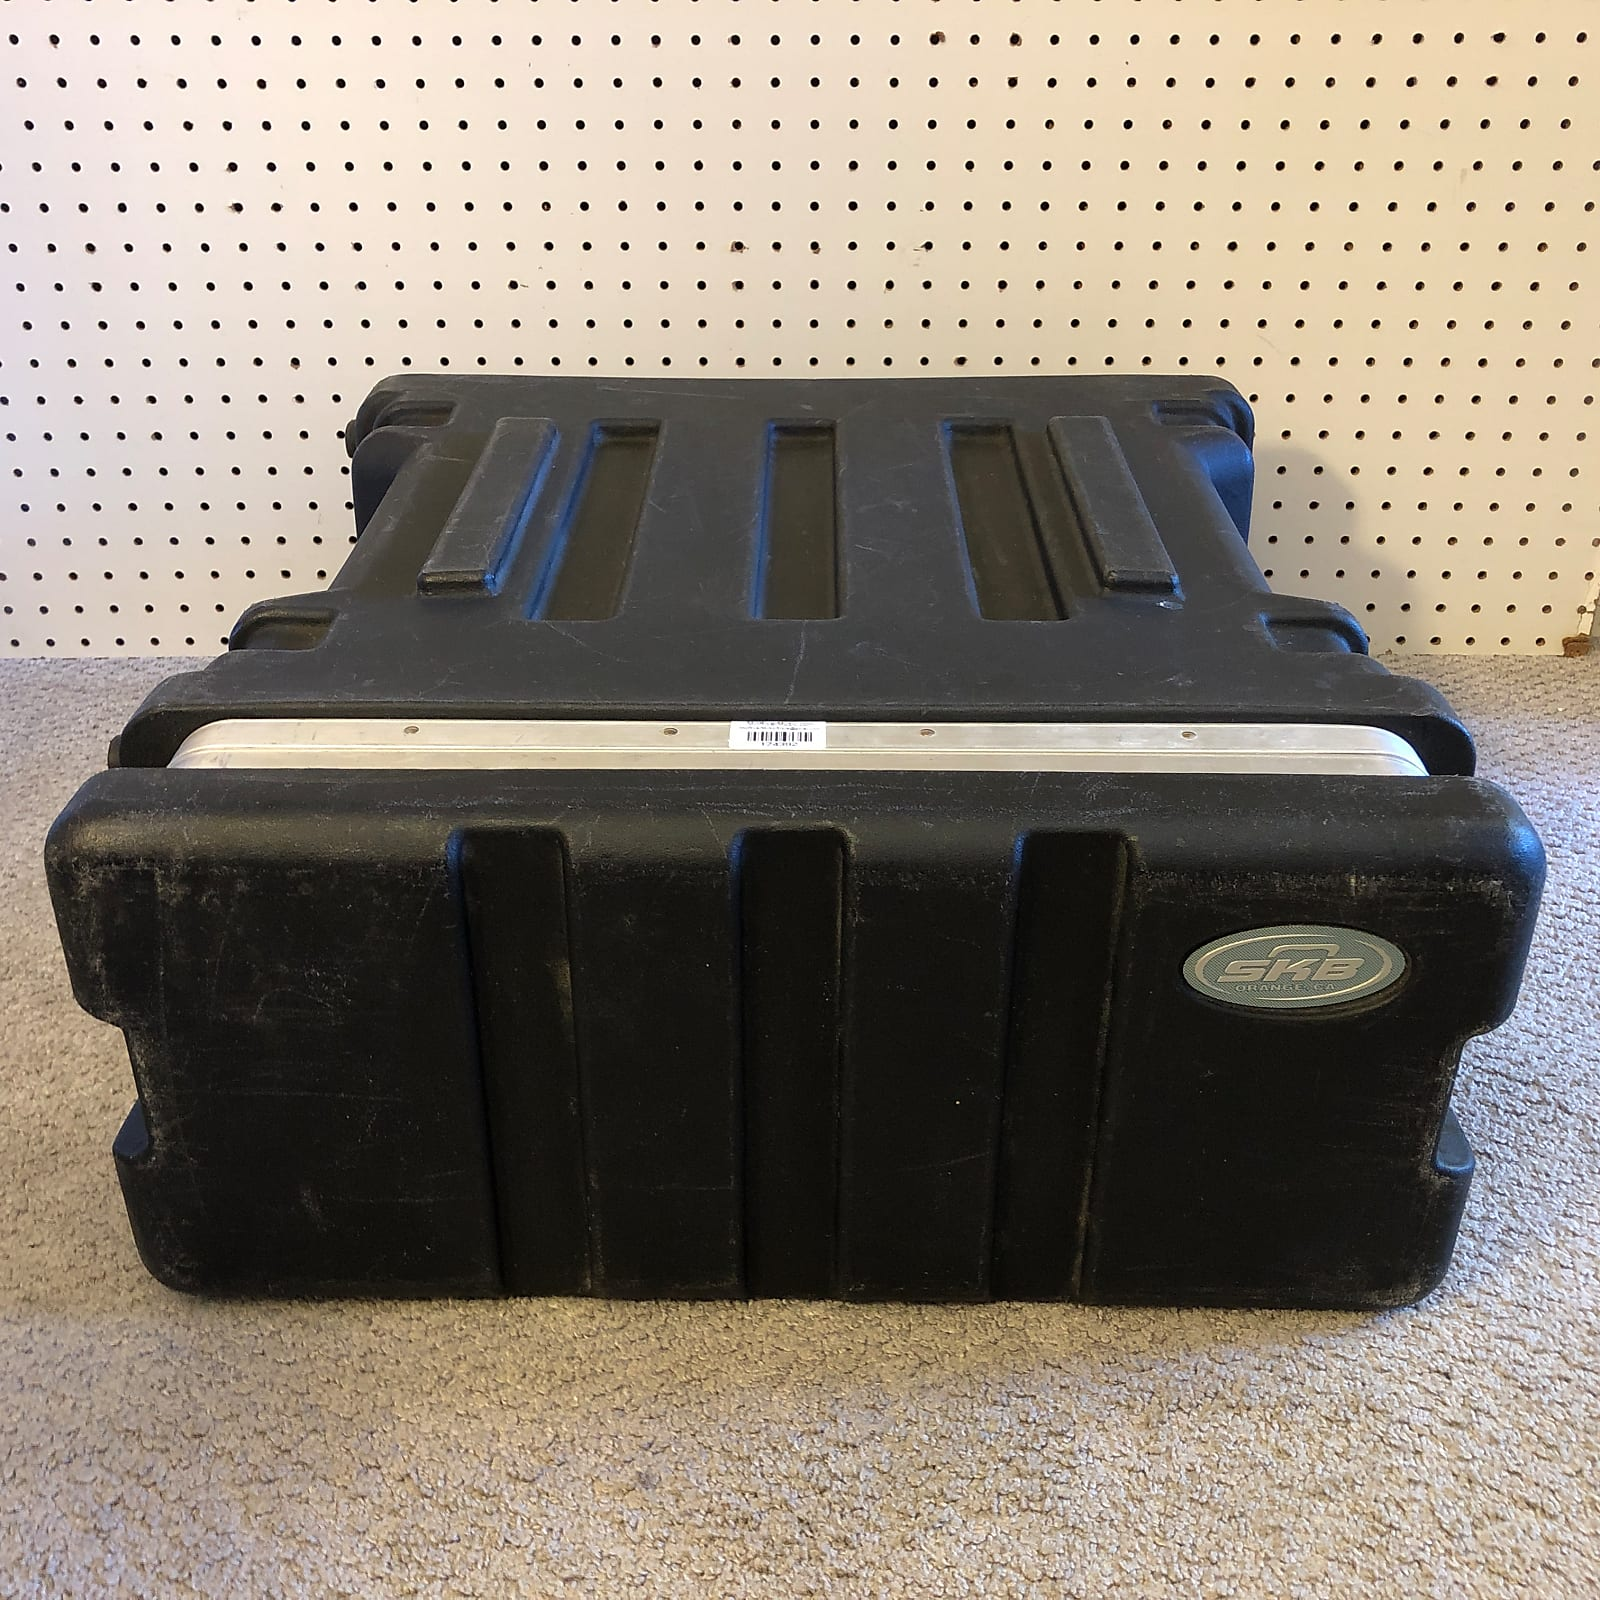 SKB 4U Molded ATA 4-Space Molded Effects Rack Case